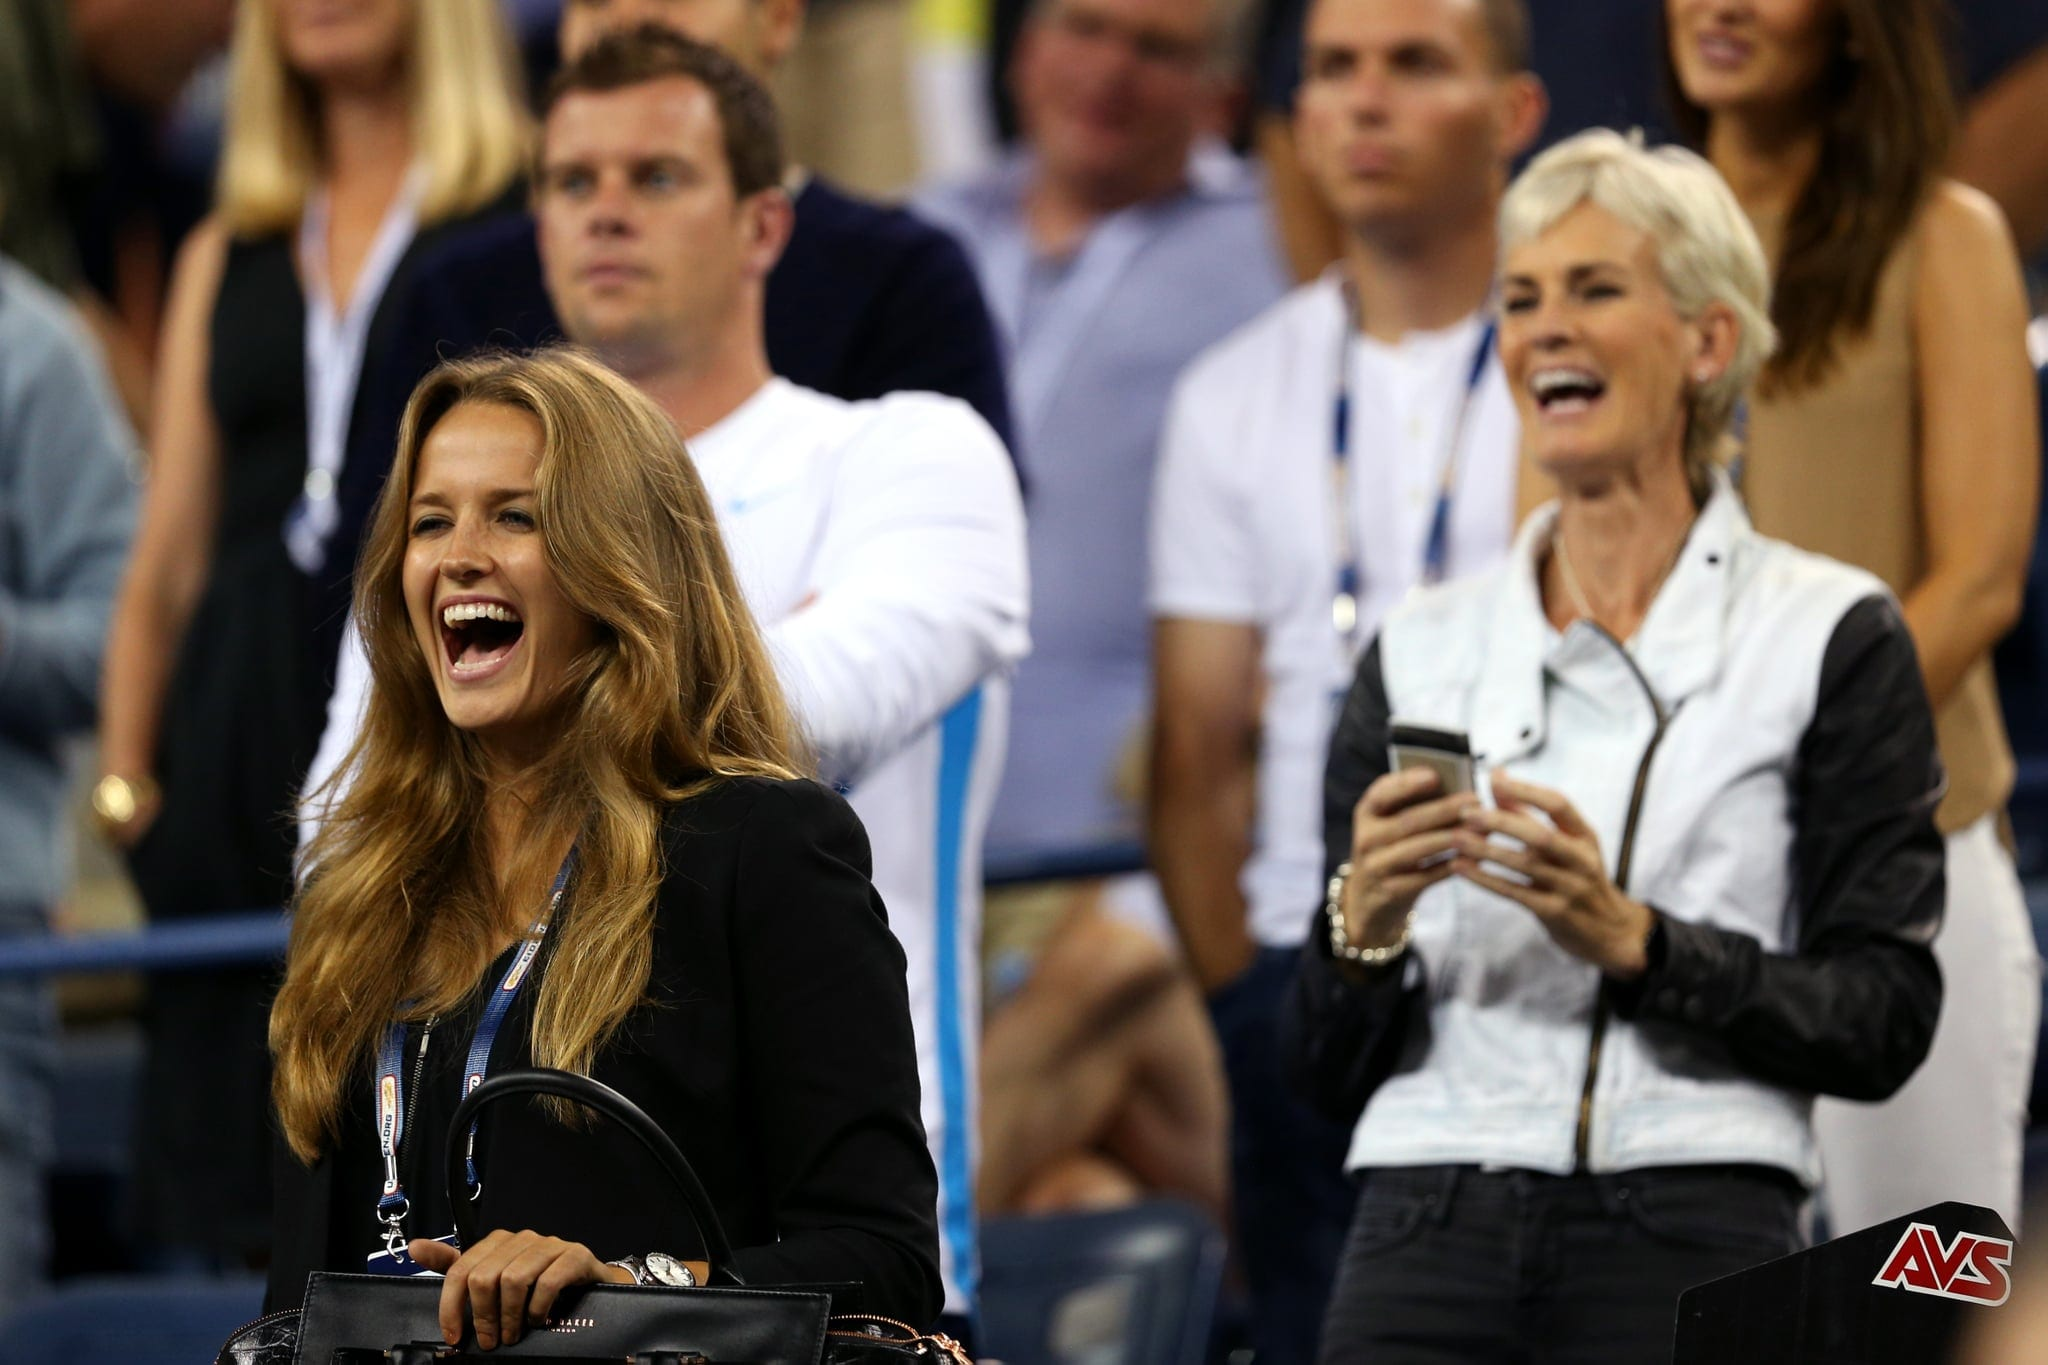 Judy Murray is the Mother Law of Kim Sears